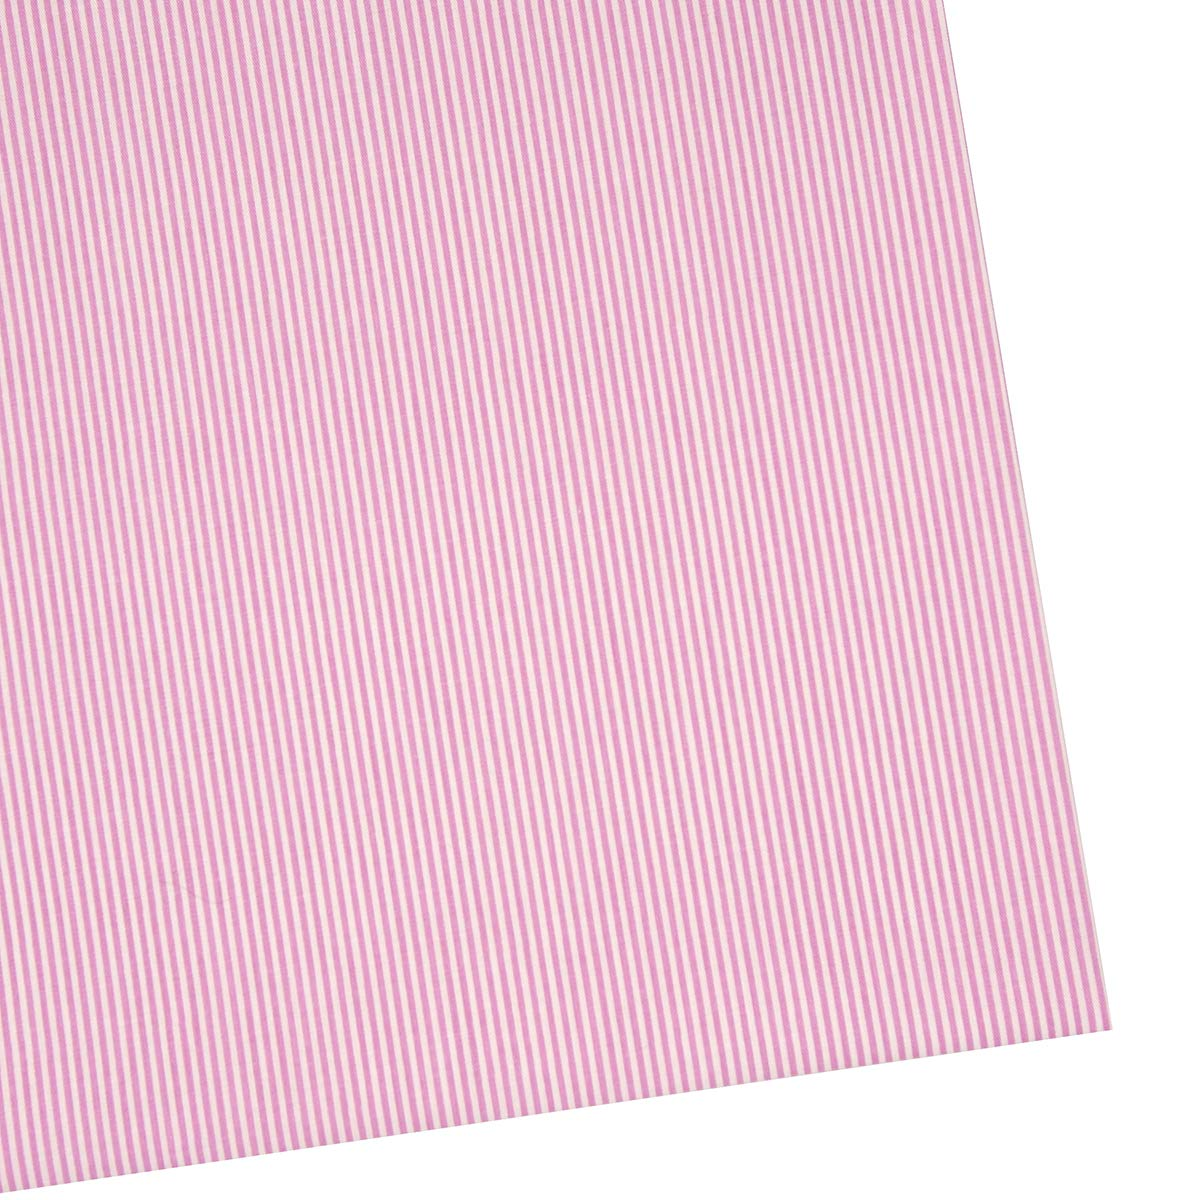 iEFUN 6PCS 20 x 22 100/% Cotton Fat Quarters Fabric Bundles Quilting Fabric for Sewing Crafting Pink